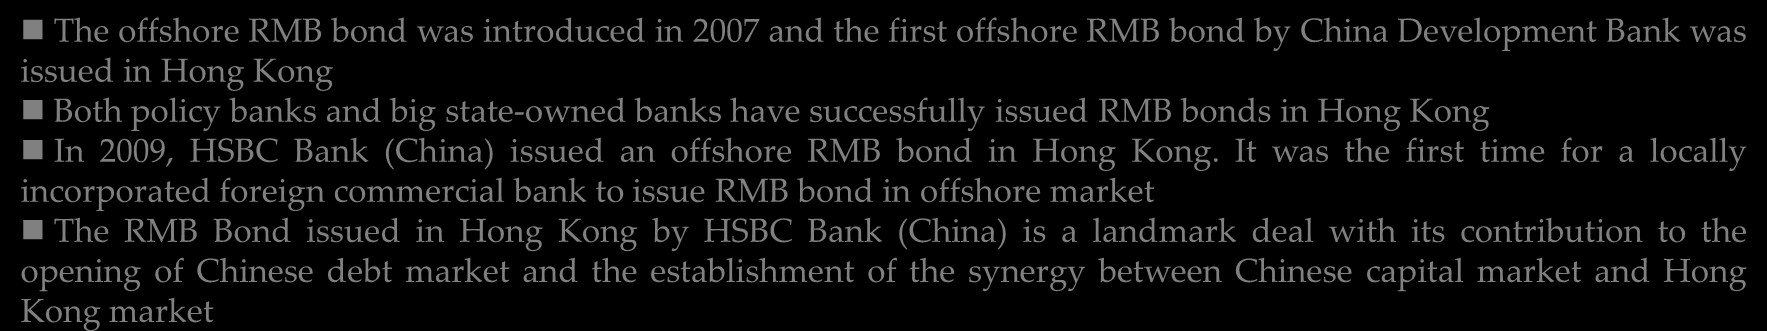 2.2 Major Breakthrough Offshore RMB Bond The offshore RMB bond was introduced in 2007 and the first offshore RMB bond by China Development Bank was issued in Hong Kong Both policy banks and big